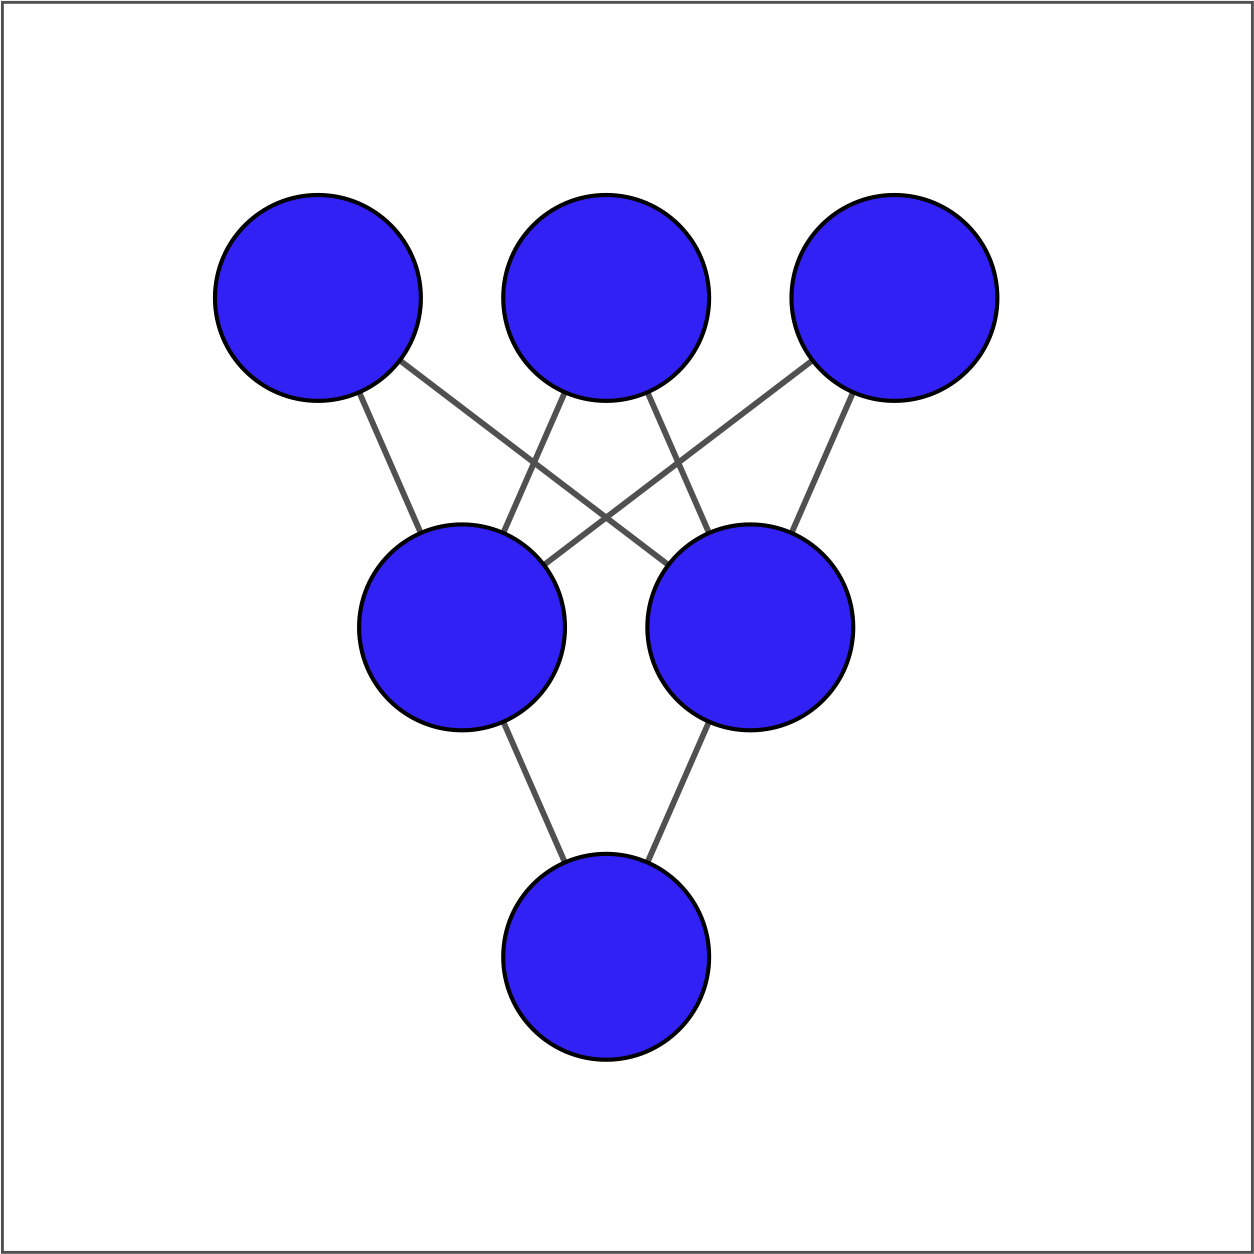 This image depicts an neural network with 5 input nodes and 3 output nodes.